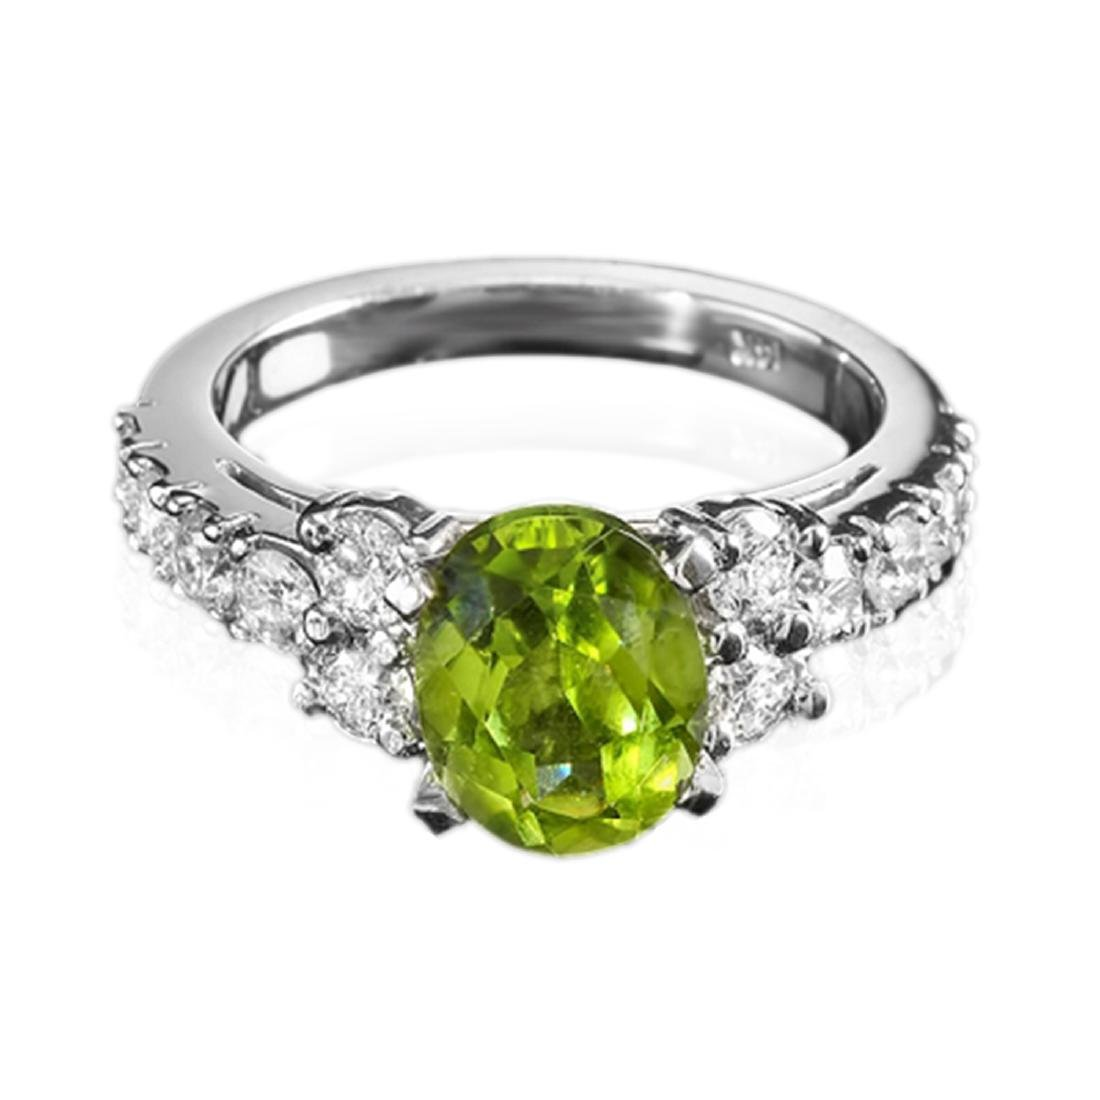 3.00 Carat Natural Peridot 18K Solid White Gold Diamond